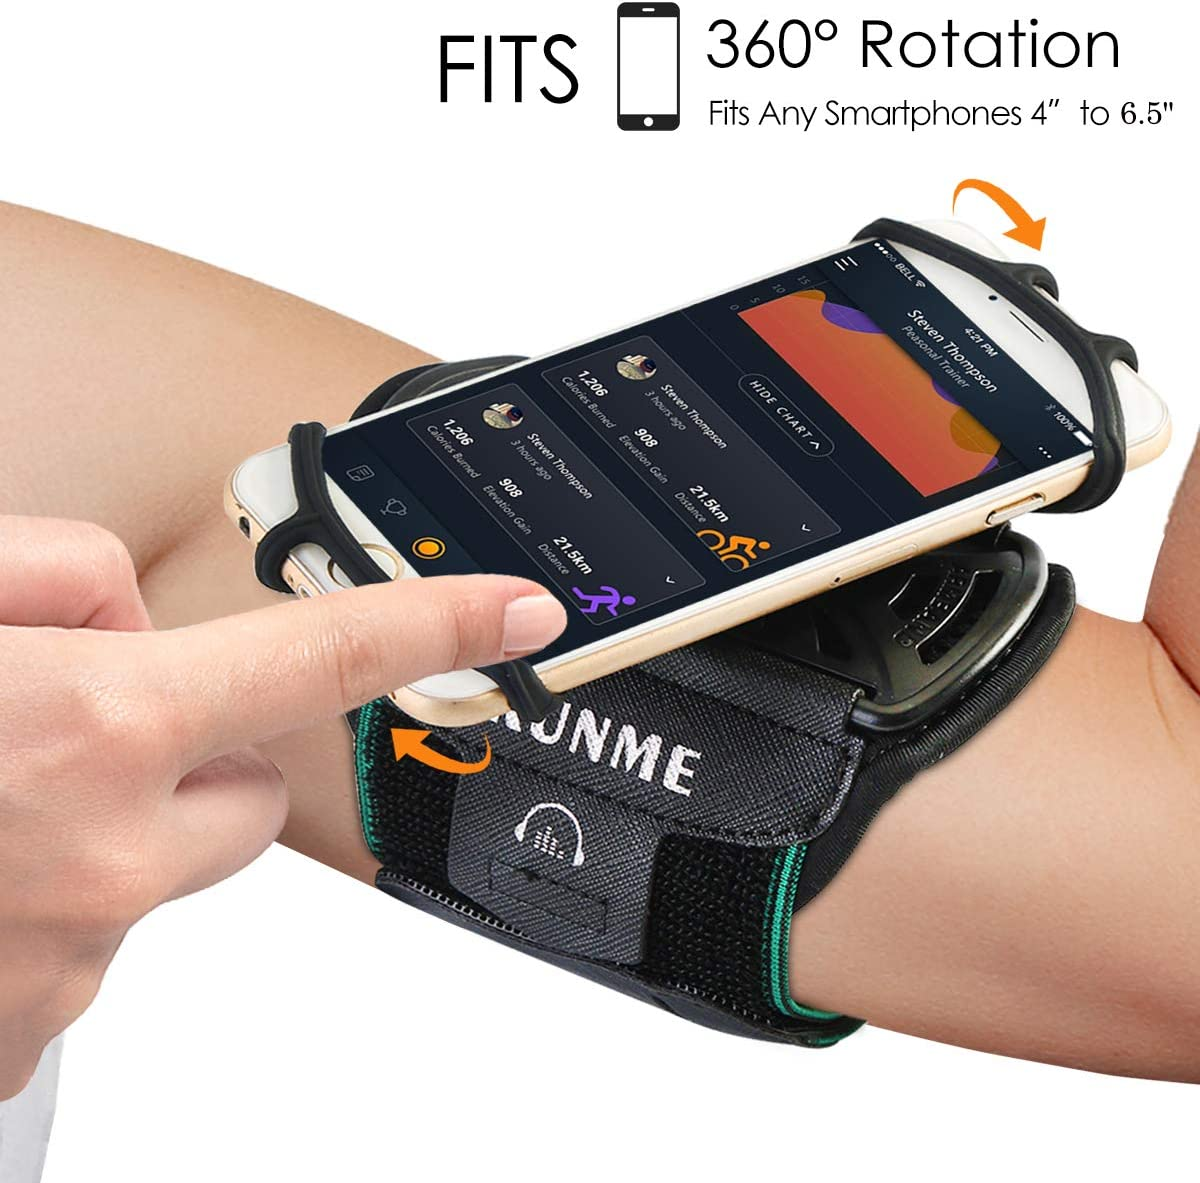 Armband Black Wristband Phone Holder for Running Universal Sports Armband for 4-6.5 inch iPhone X iPhone 8 8Plus 7 7 Plus 6 6S Plus 5S Samsung Galaxy S9 S8 S8 Plus S7 Edge Note 8 Google Pixel